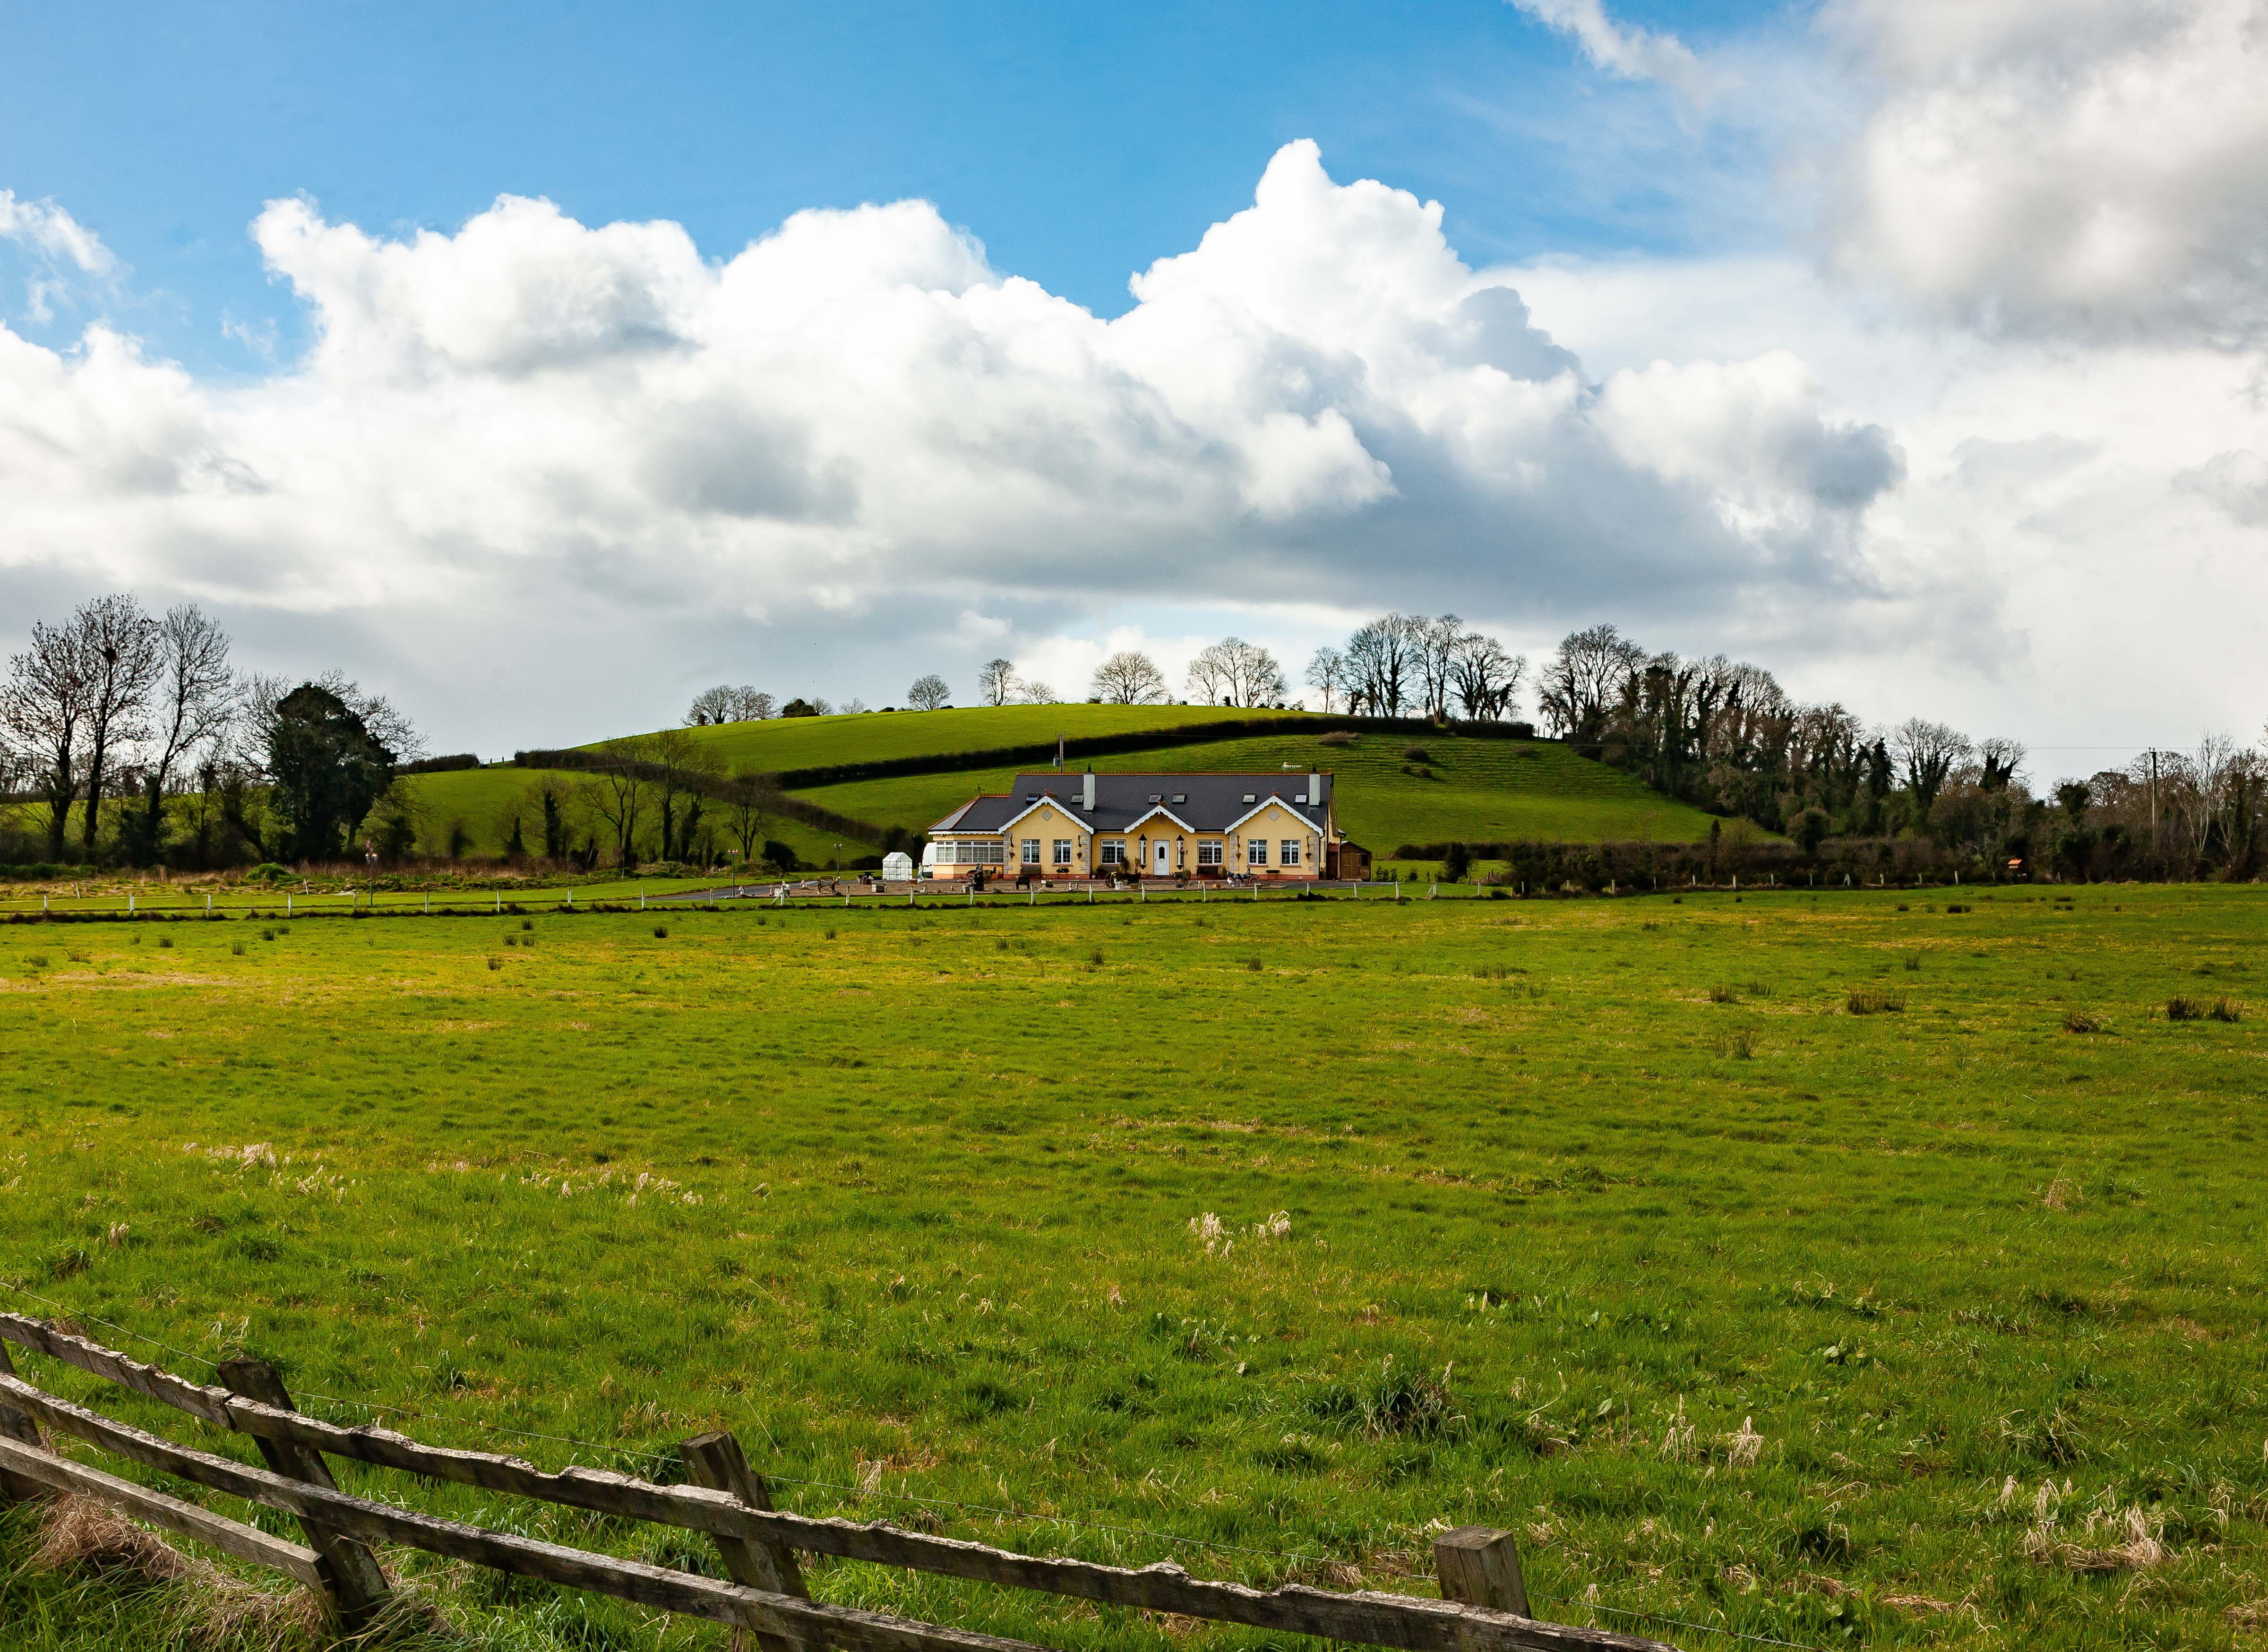 N Ireland, Fermanagh Prov, Country Home, 2009, IMG 0247